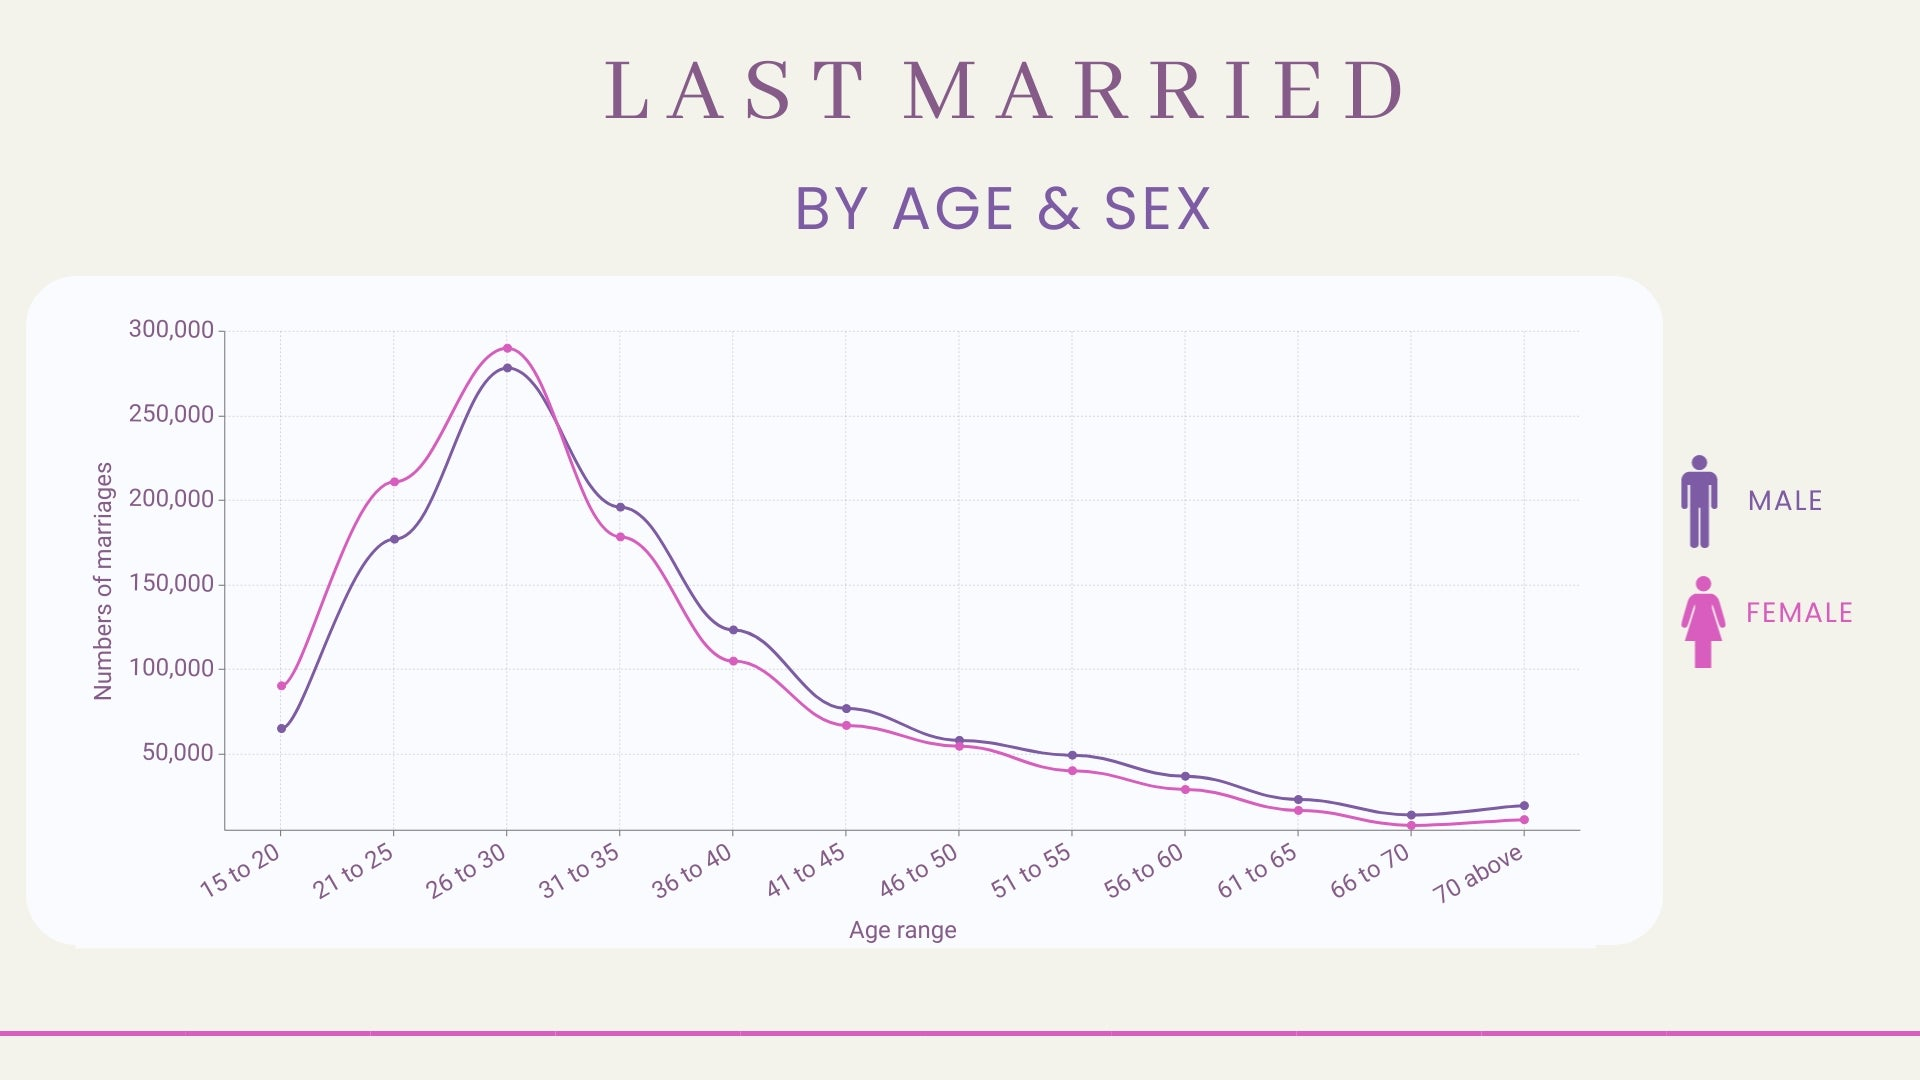 Age & Gender: Last Married in 2019 for the Whole United States